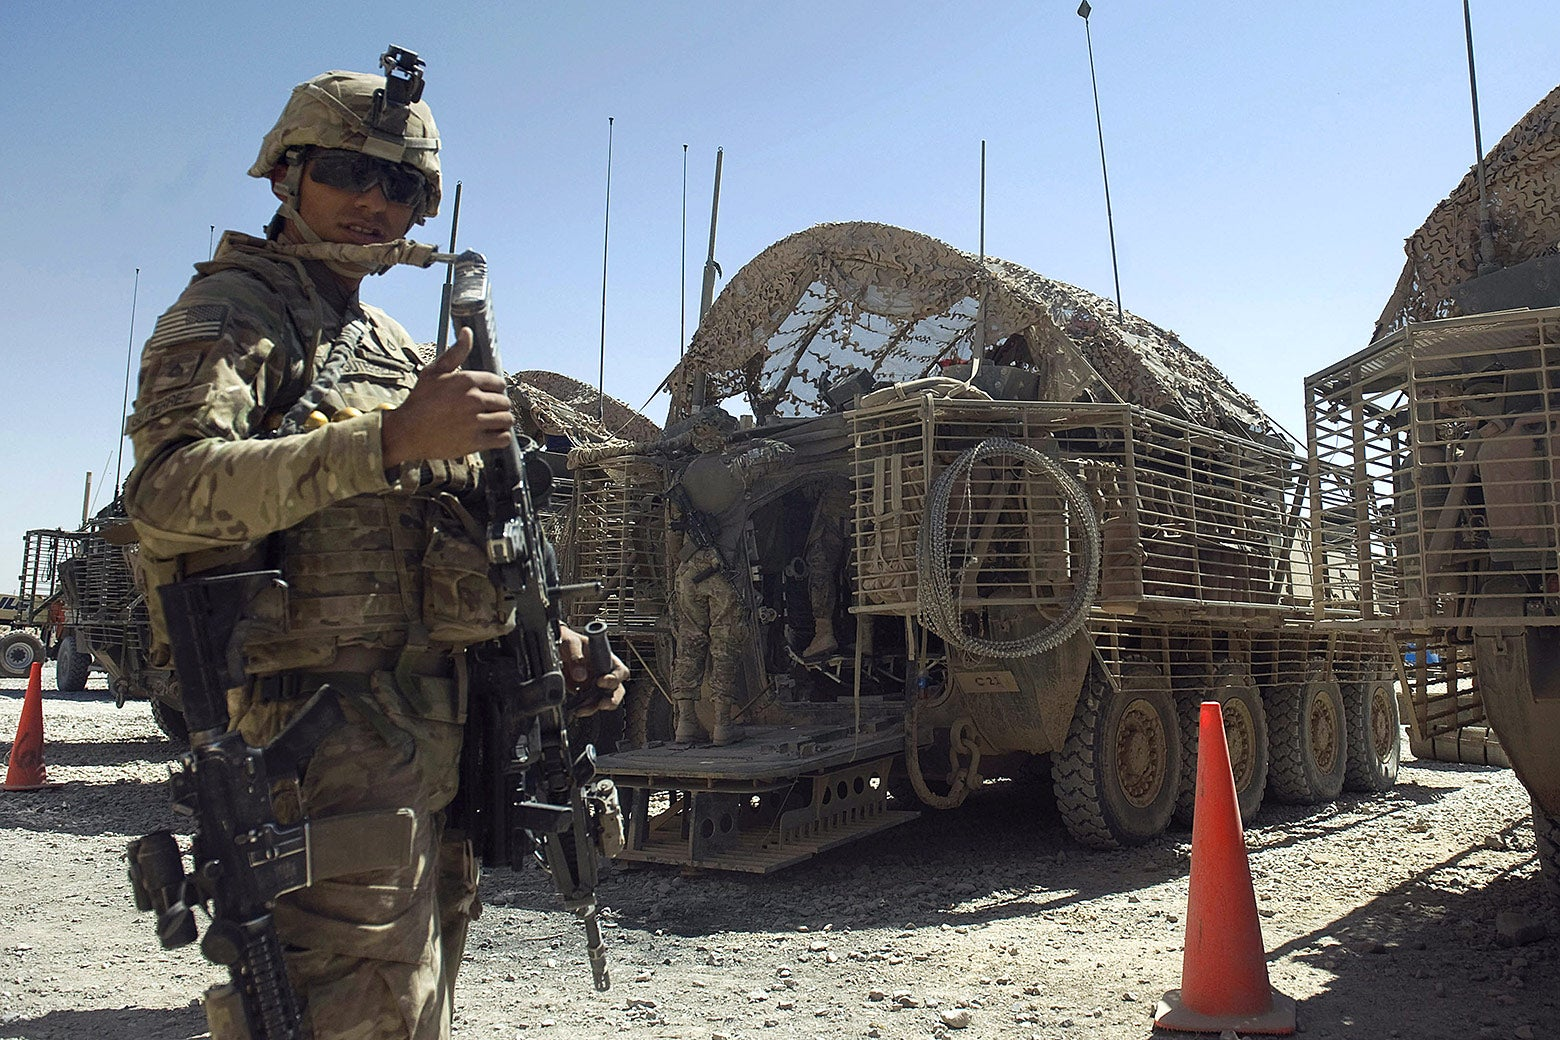 A soldier attached to the 2nd platoon, C-Coy. 1-23 infantry based at Zangabad forward operating base in Panjwai District, Afghanistan, gestures on Sept. 22, 2012.